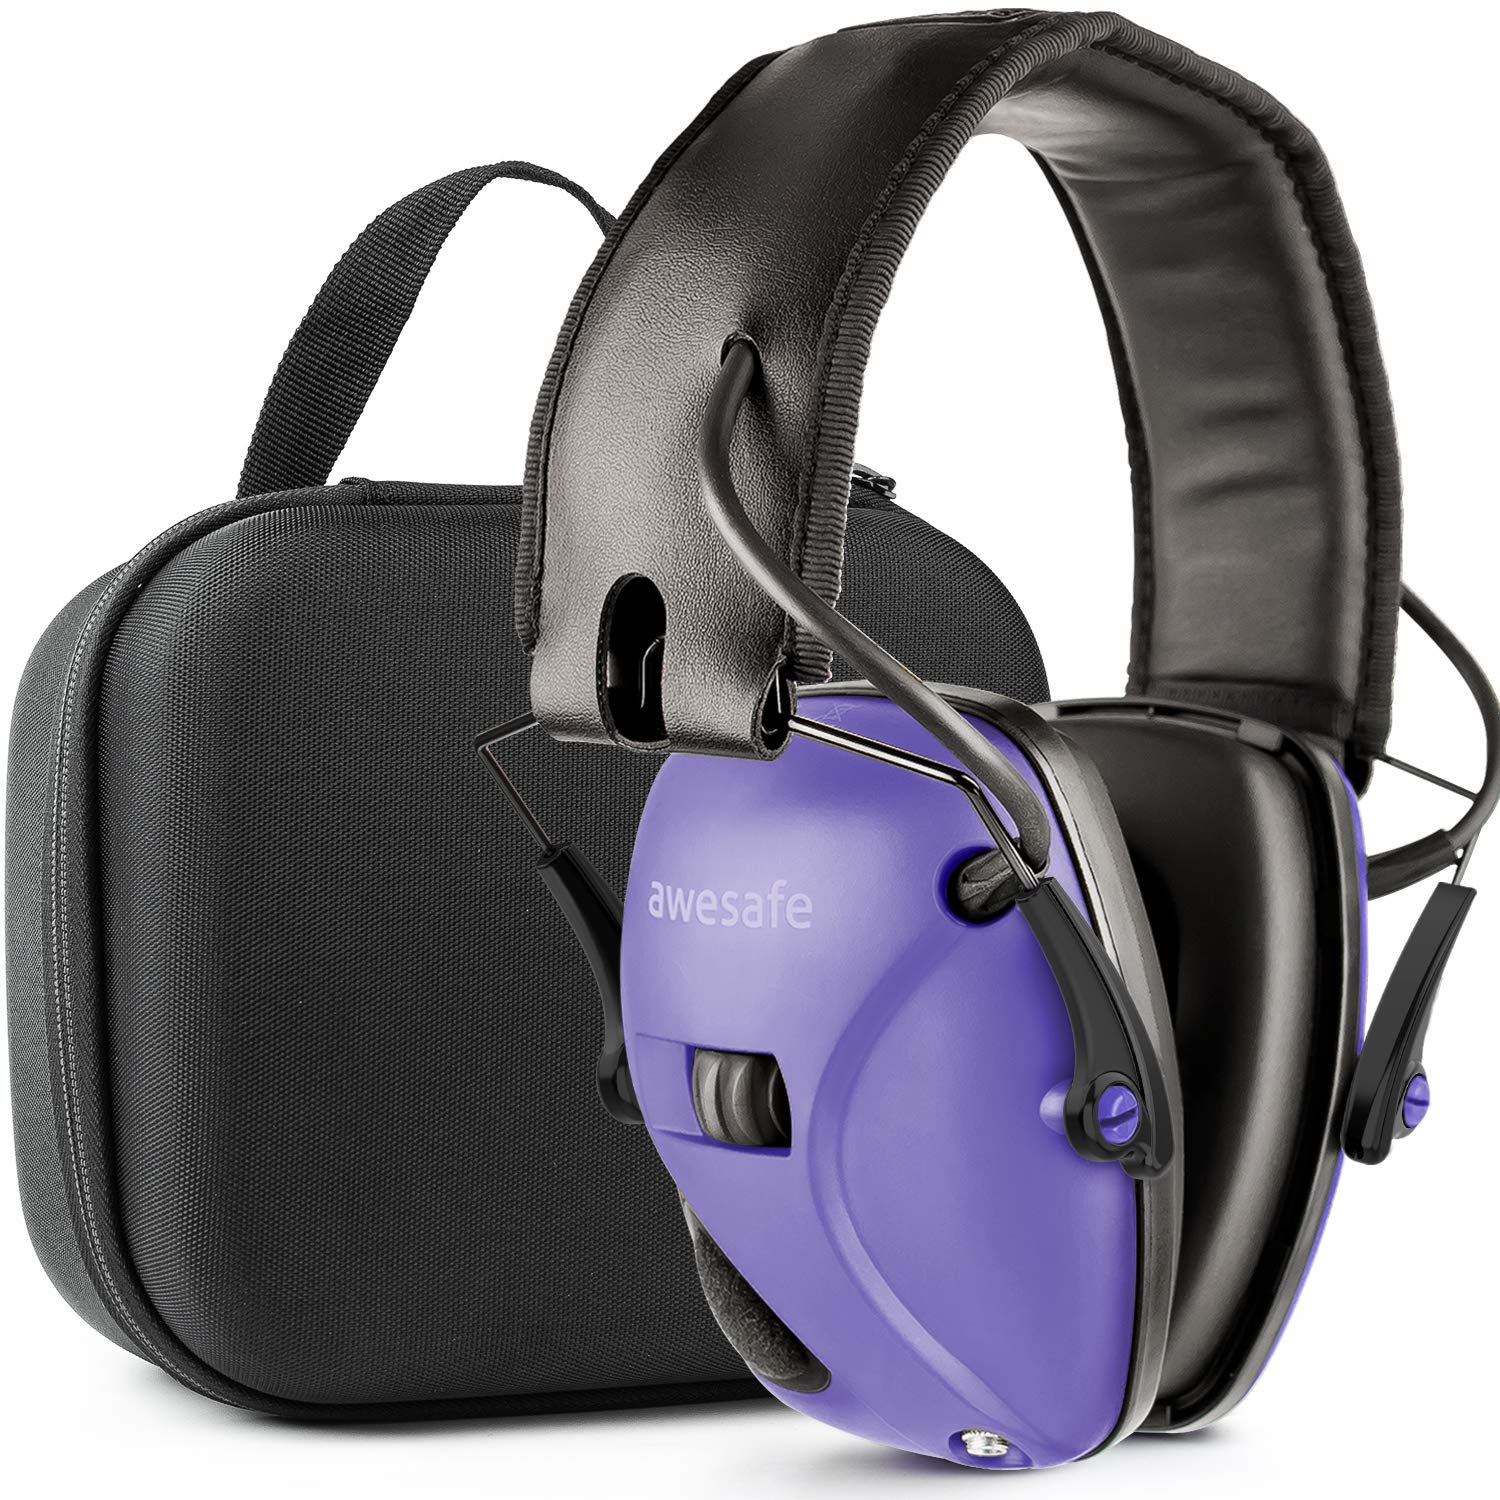 Awesafe Ear Protection for Shooting Range,Electronic Hearing Protection for Impact Sport [with Travel Storage Carrying Case Bag],Safety Ear Muffs, NRR 22, Ideal for Shooters and Hunting,Purple by awesafe